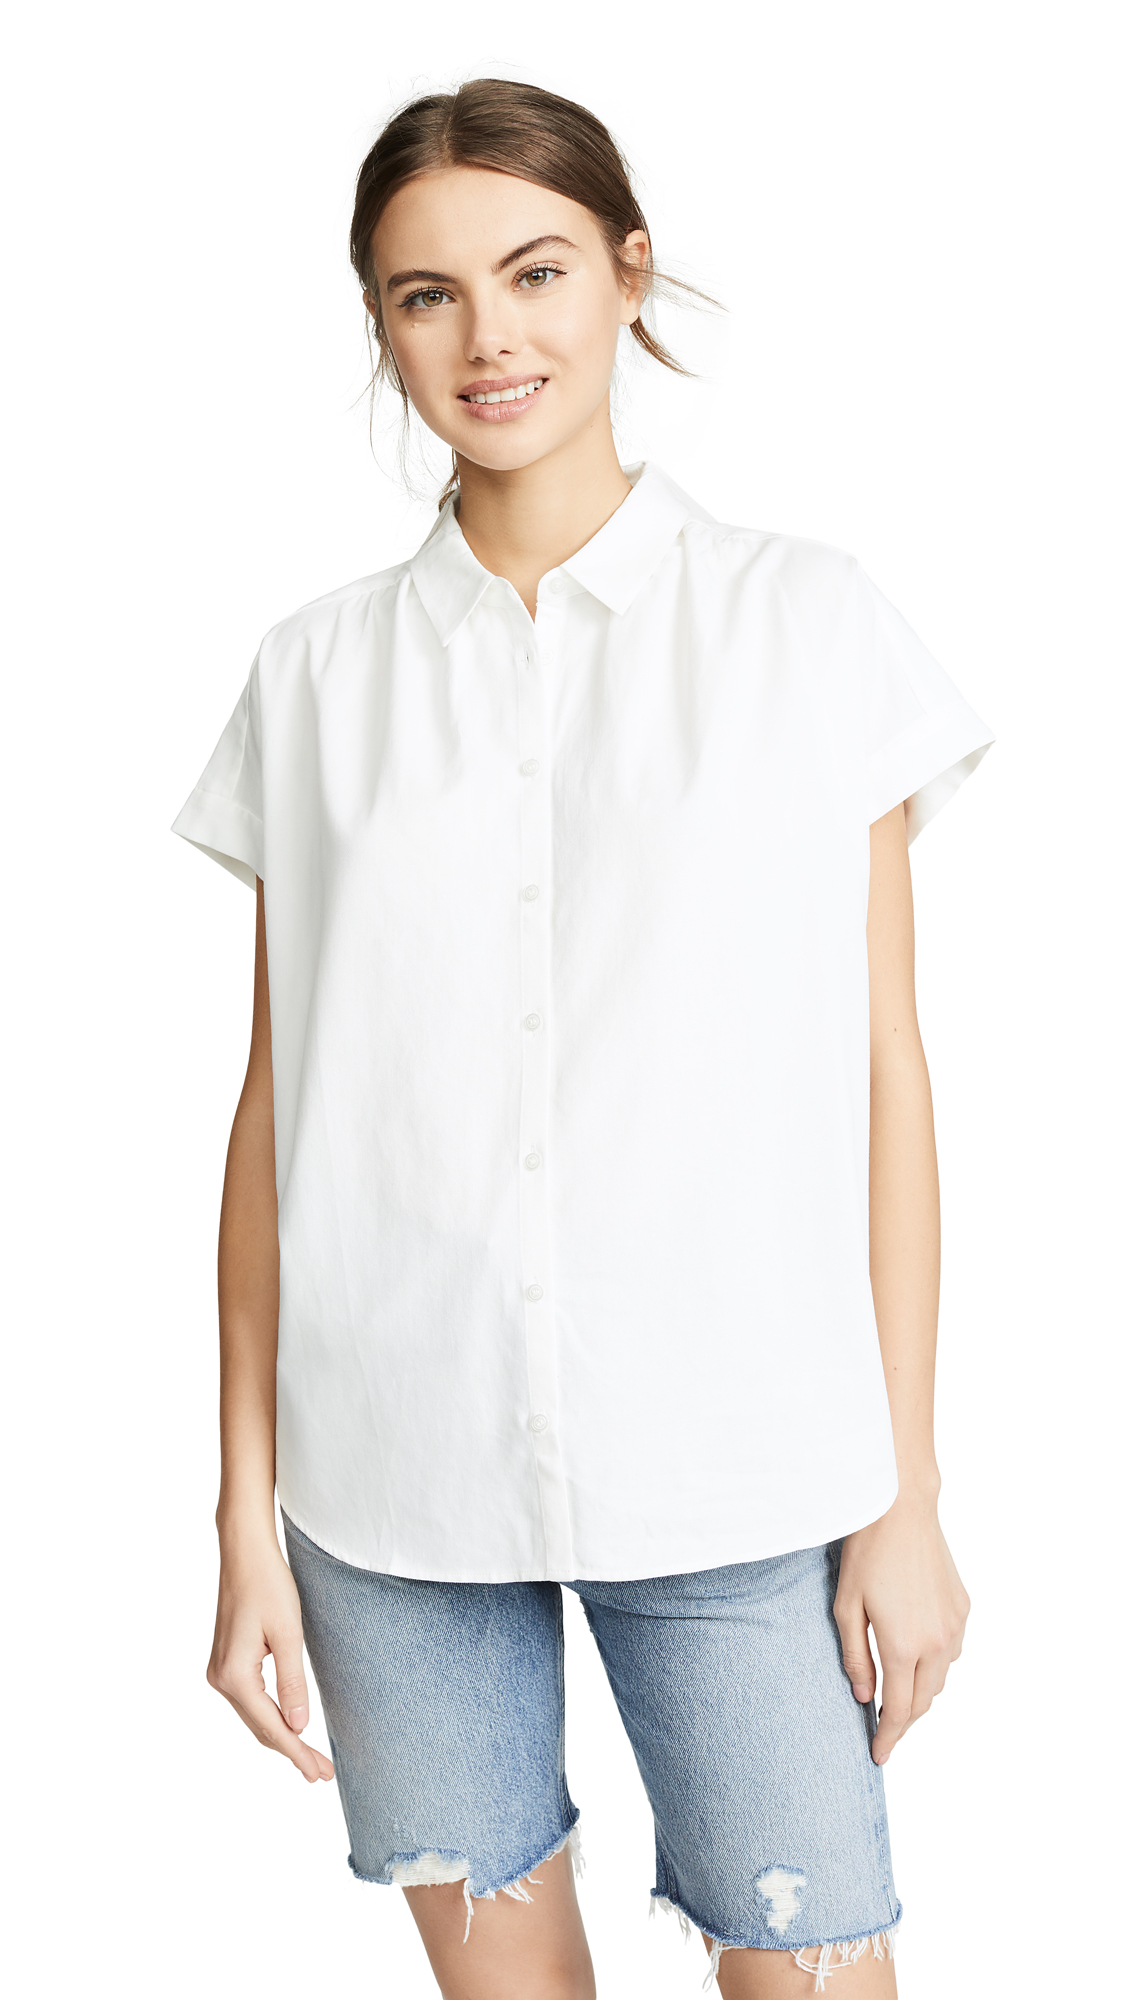 Madewell Central Shirt - Pure White